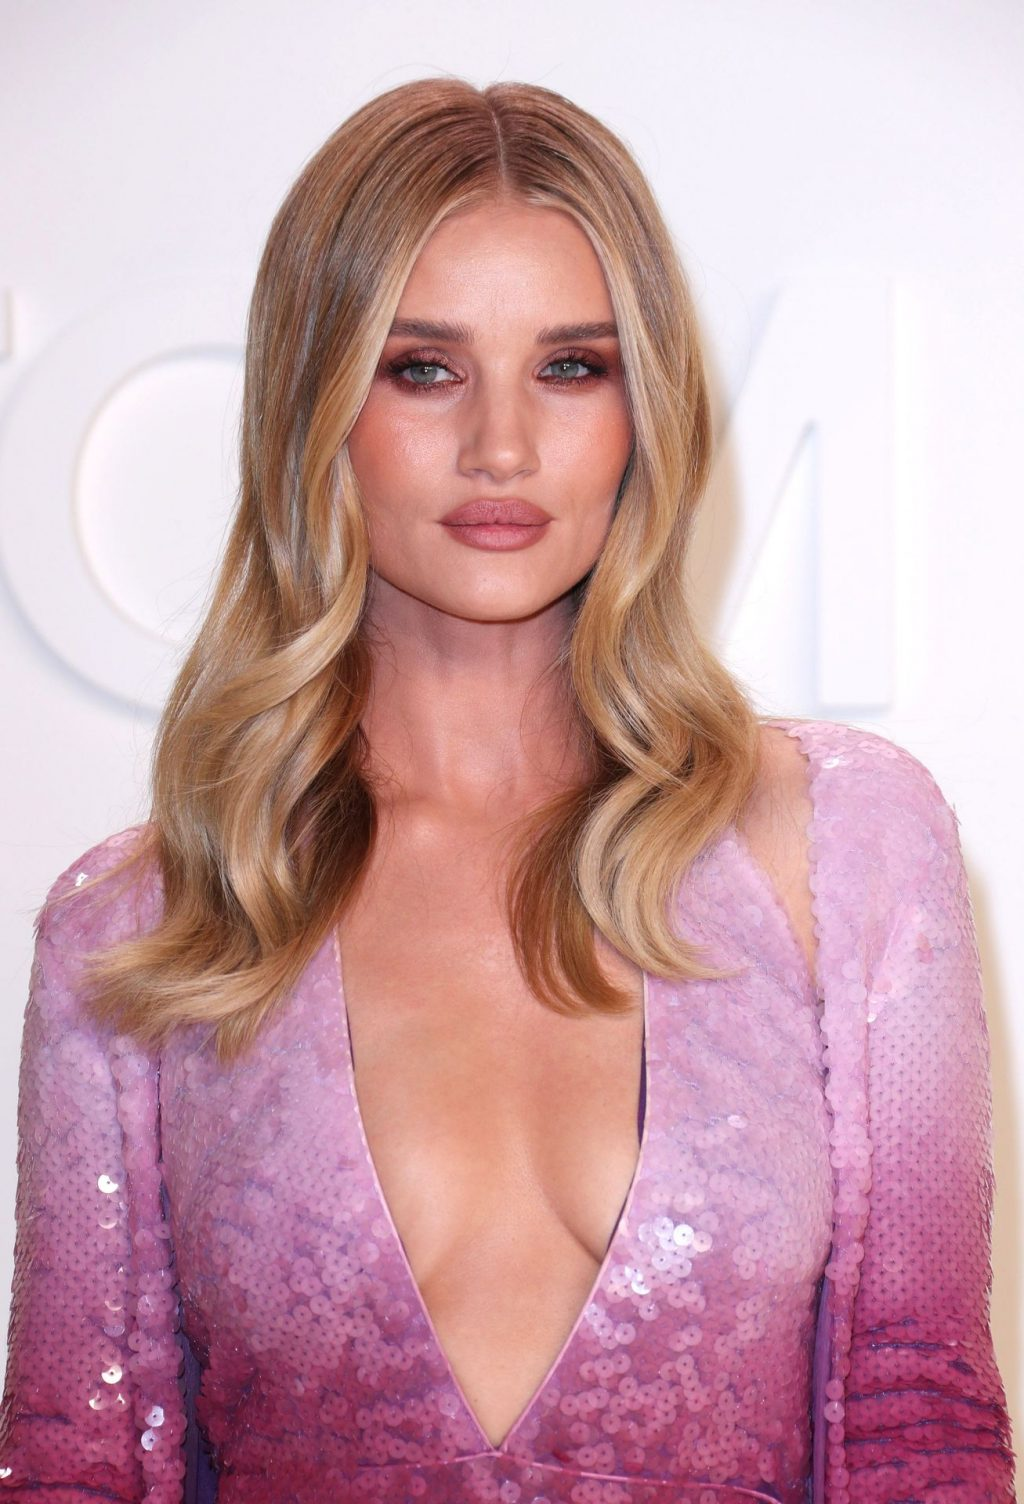 Rosie Huntington Whiteley Sexy The Fappening Blog 36 1024x1504 - Rosie Huntington-Whiteley Shows Her Cleavage at the Tom Ford Fashion Show (115 Photos)